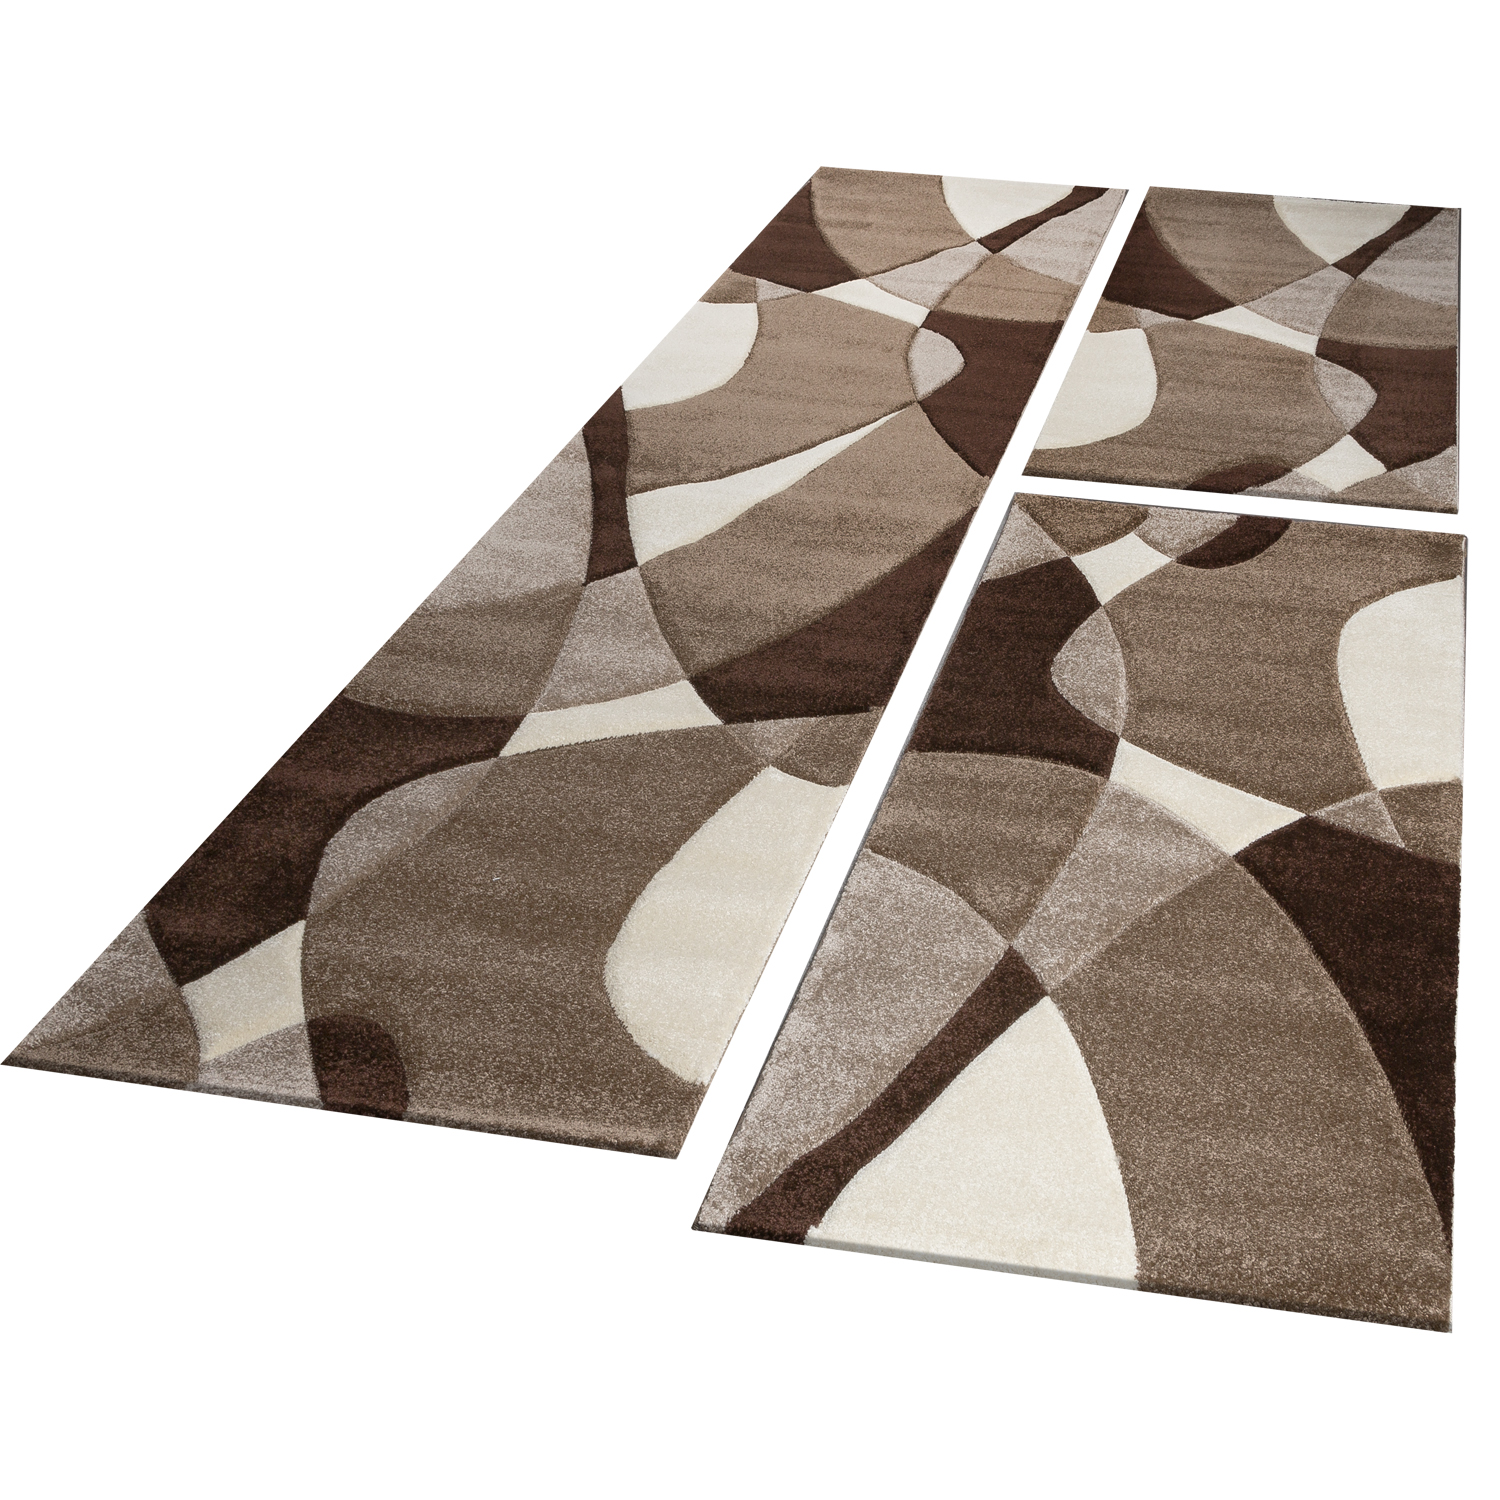 Bed Border Runner Rug Short-Pile Geometric Brown Beige Runner Set 3-Piece